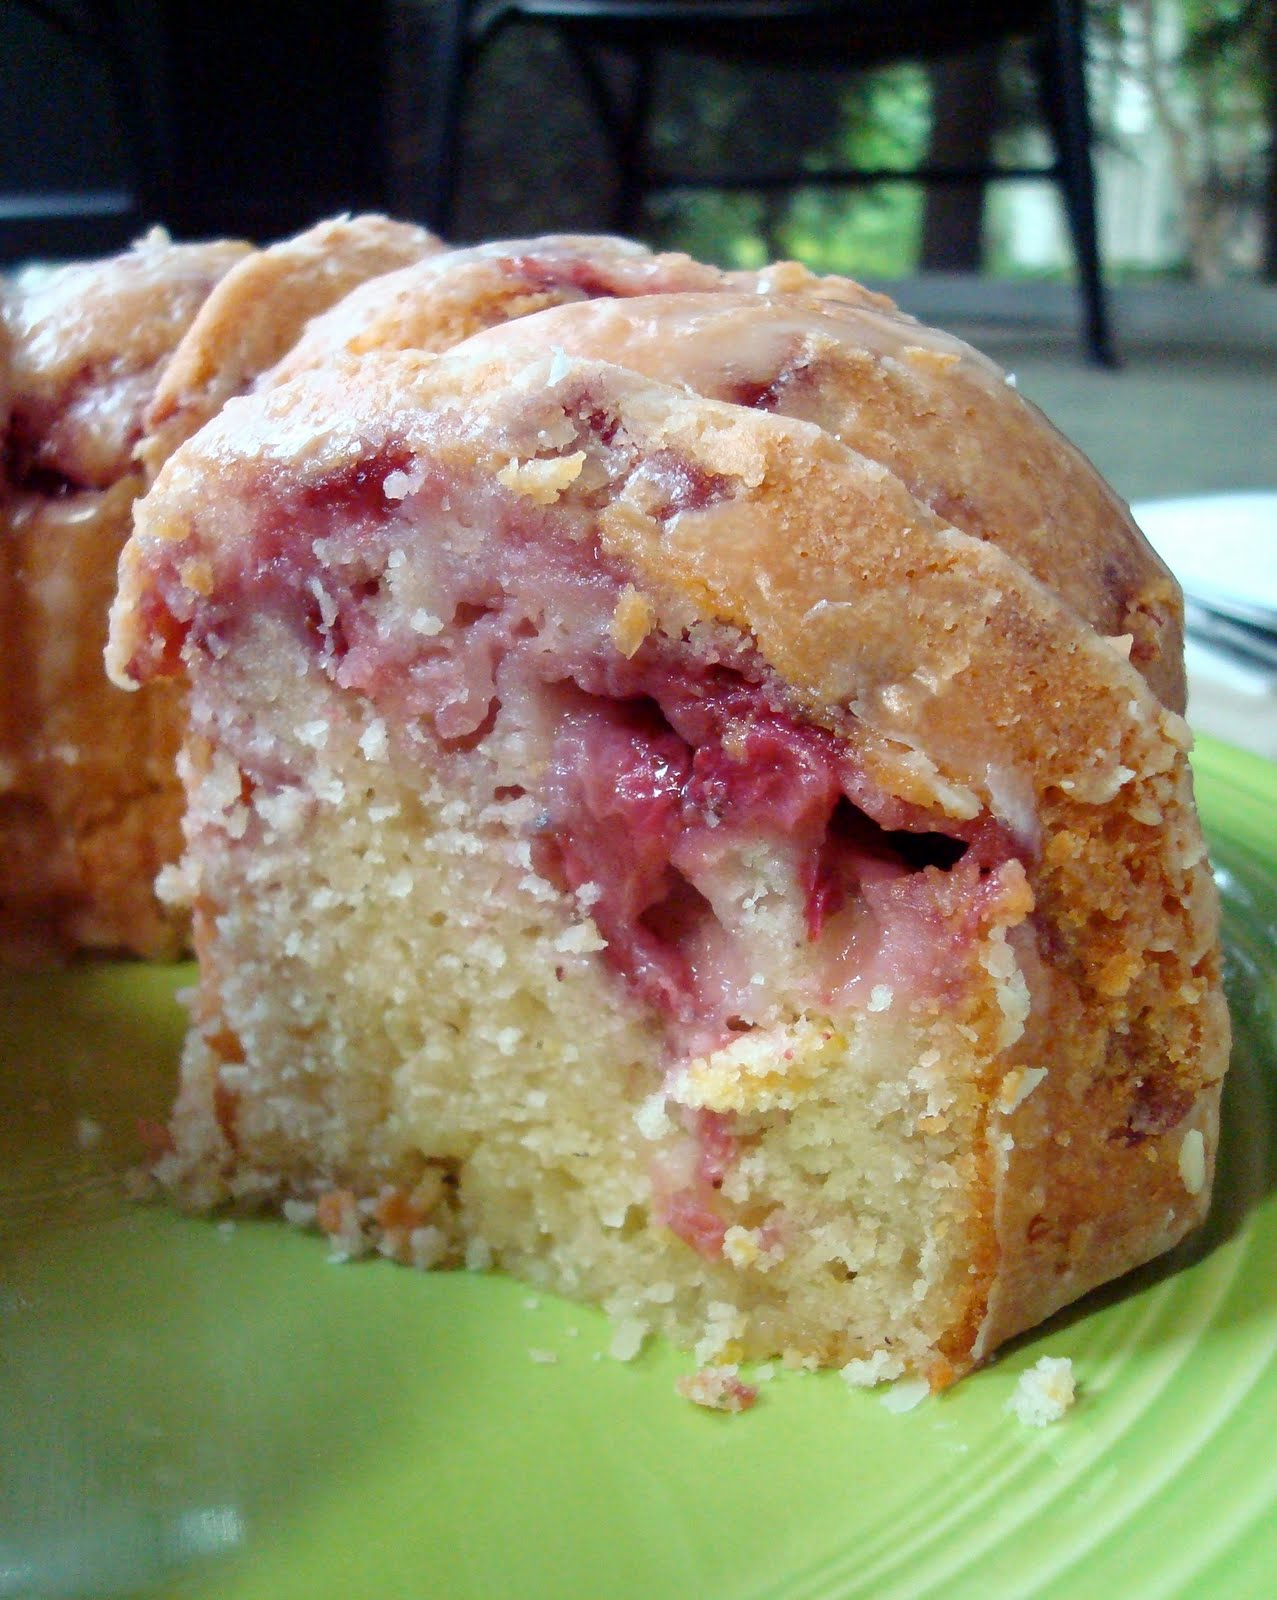 fresh strawberry ice cream fresh strawberry bread fresh strawberry ...